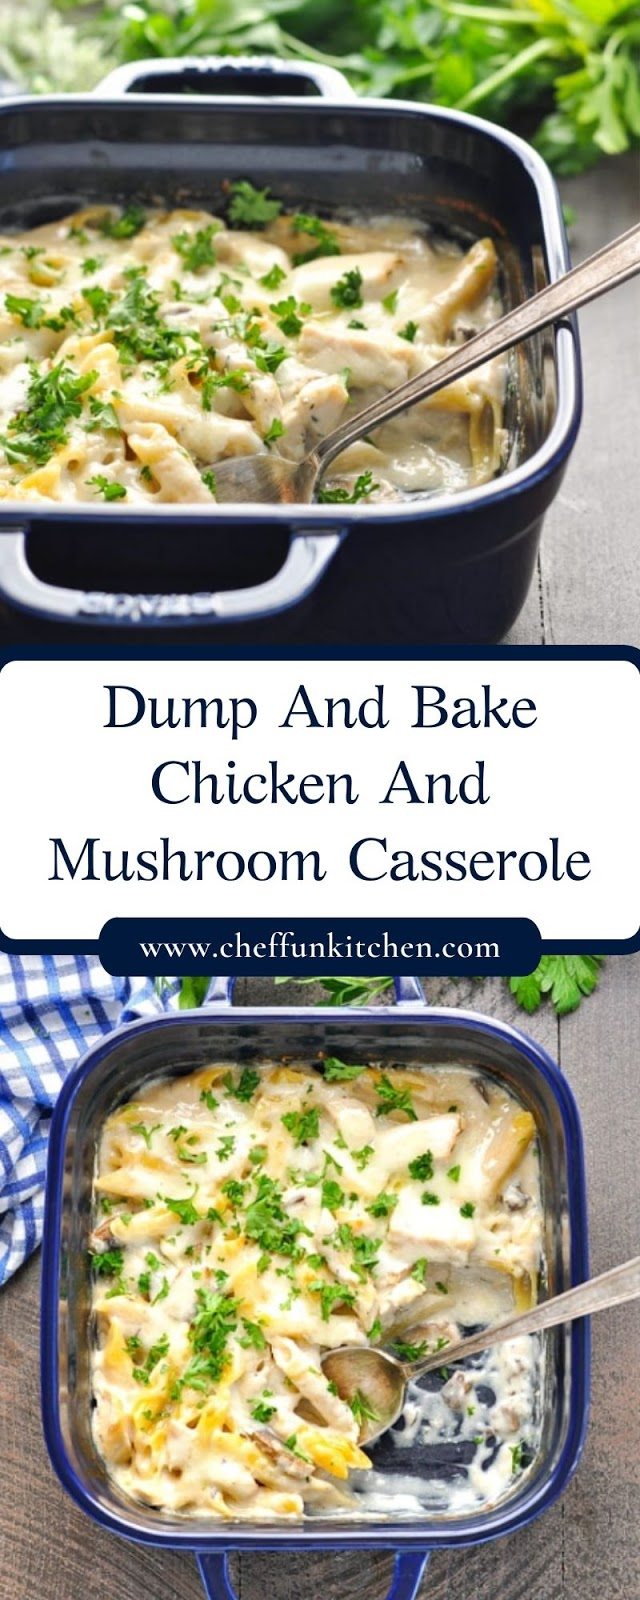 Dump And Bake Chicken And Mushroom Casserole